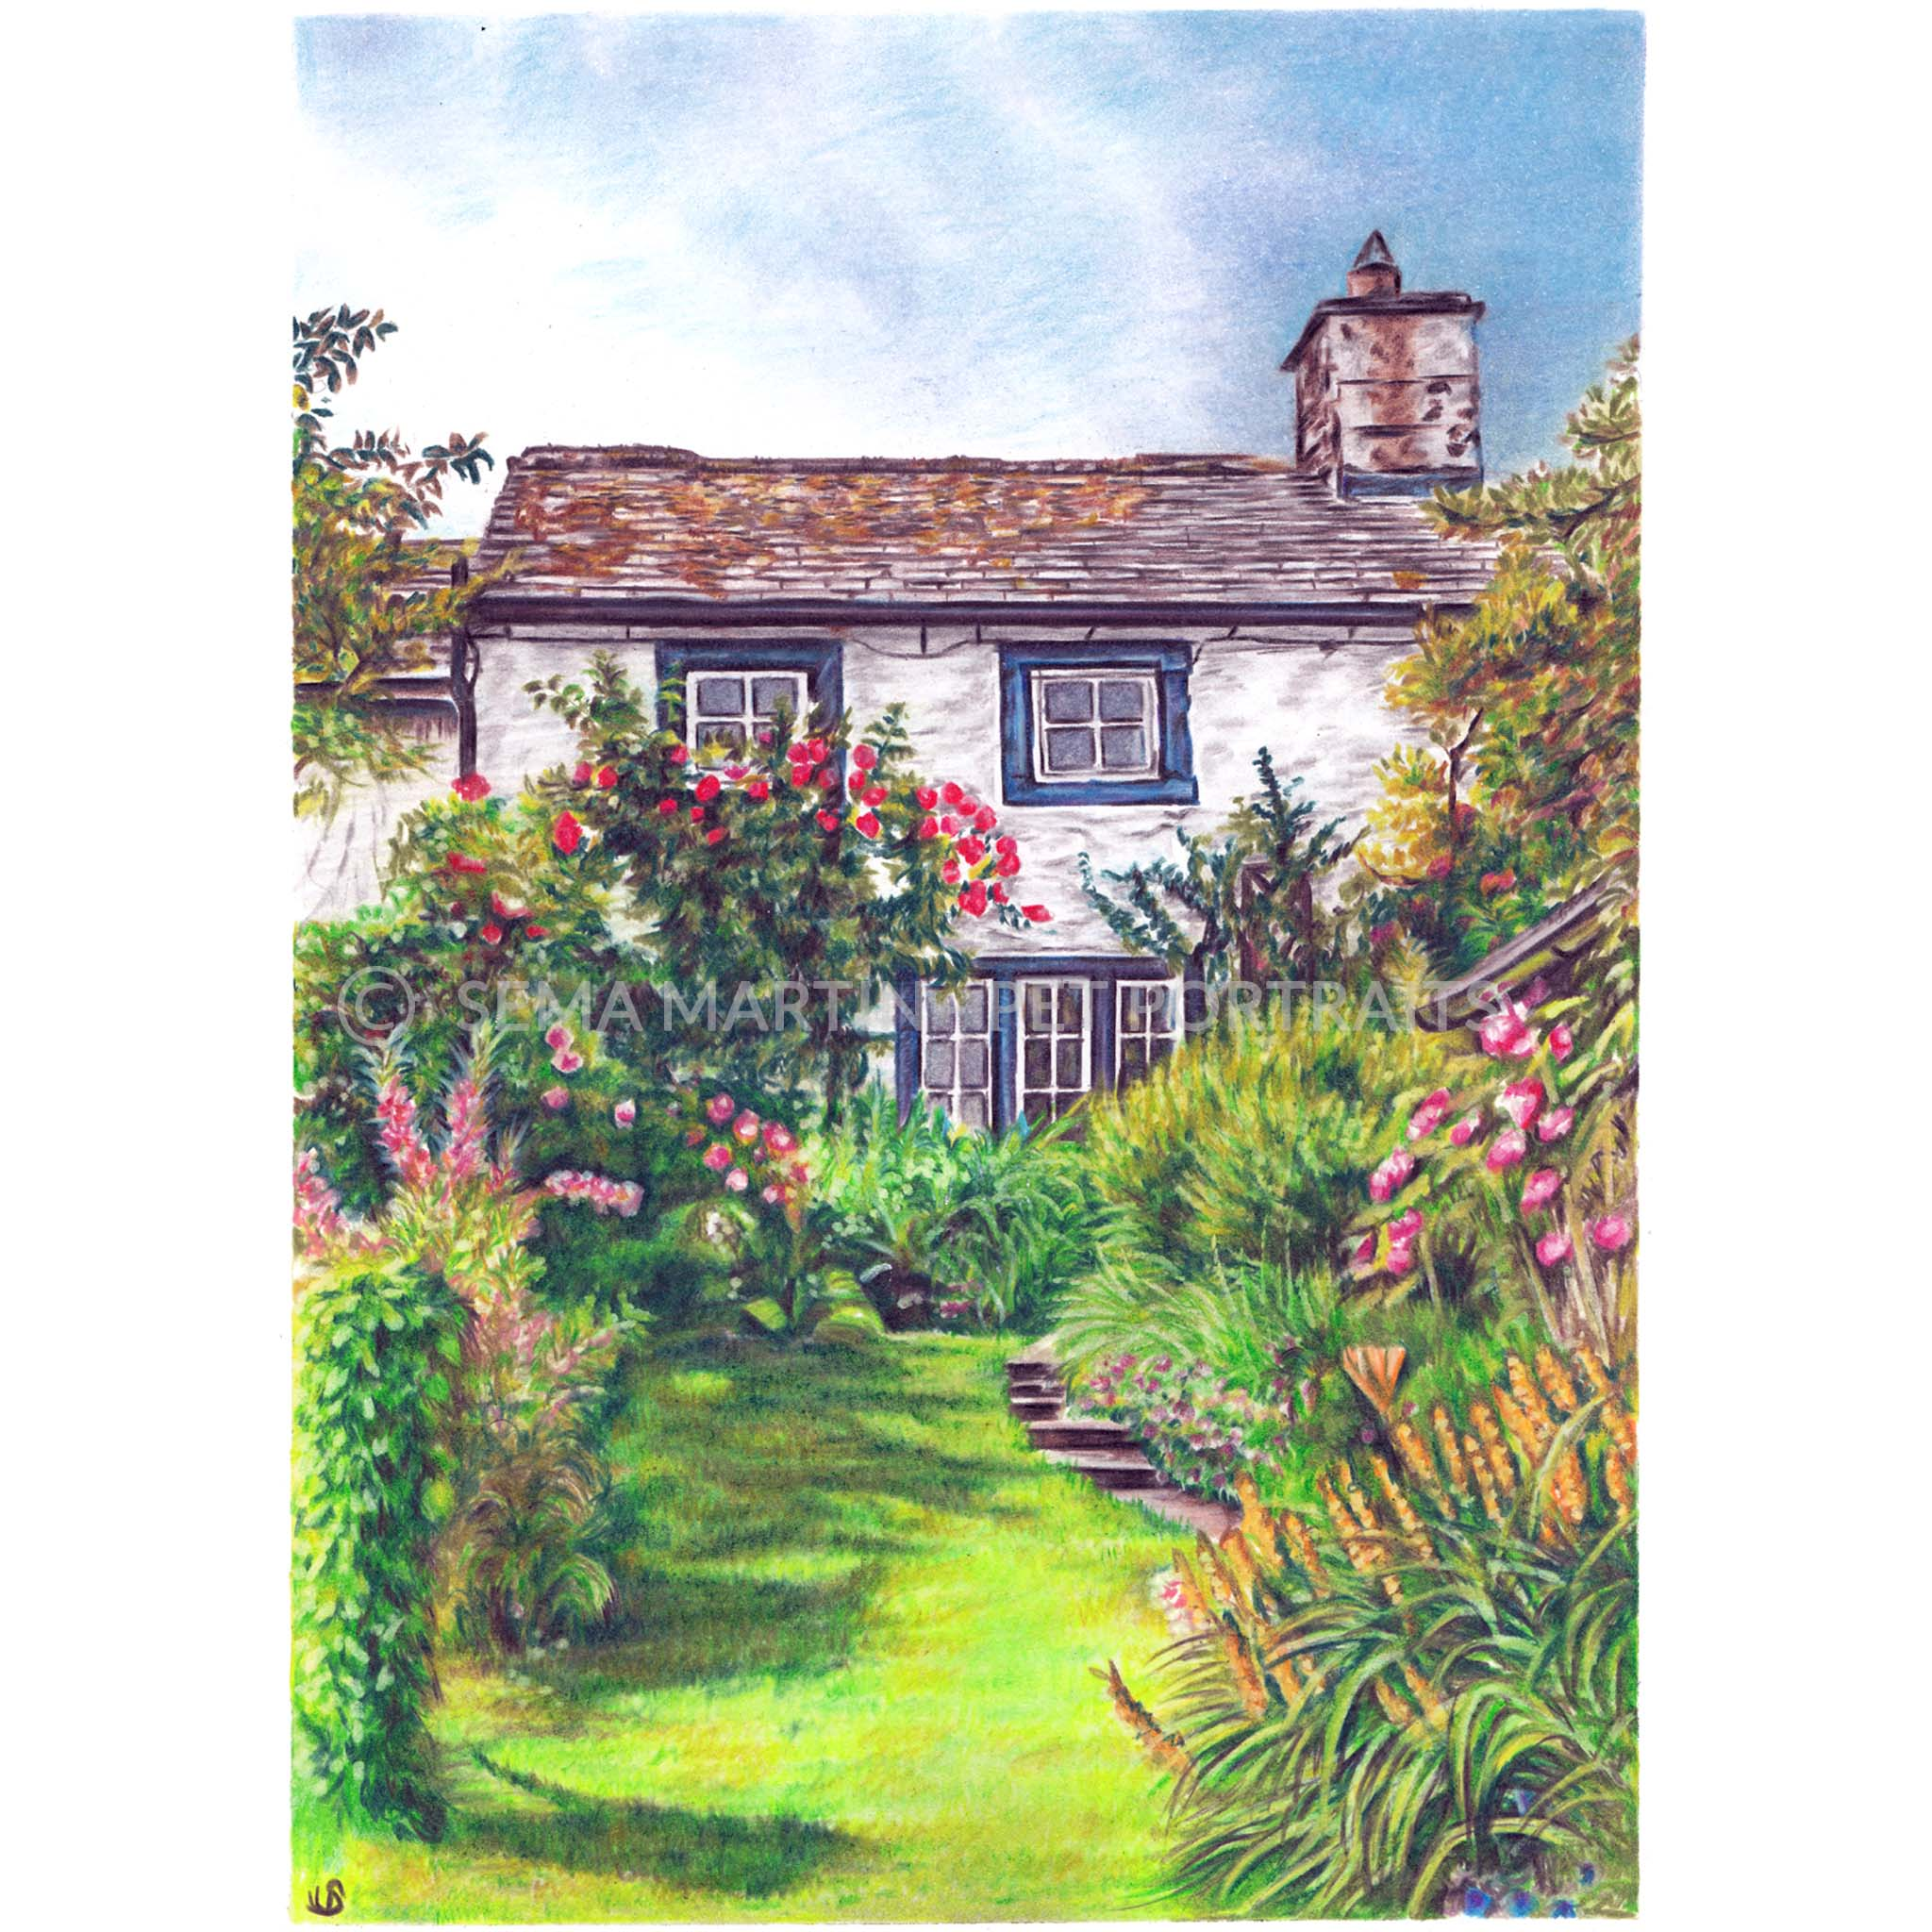 'Hunters Cottage' - UK, 8.3 x 11.7 inches, 2019